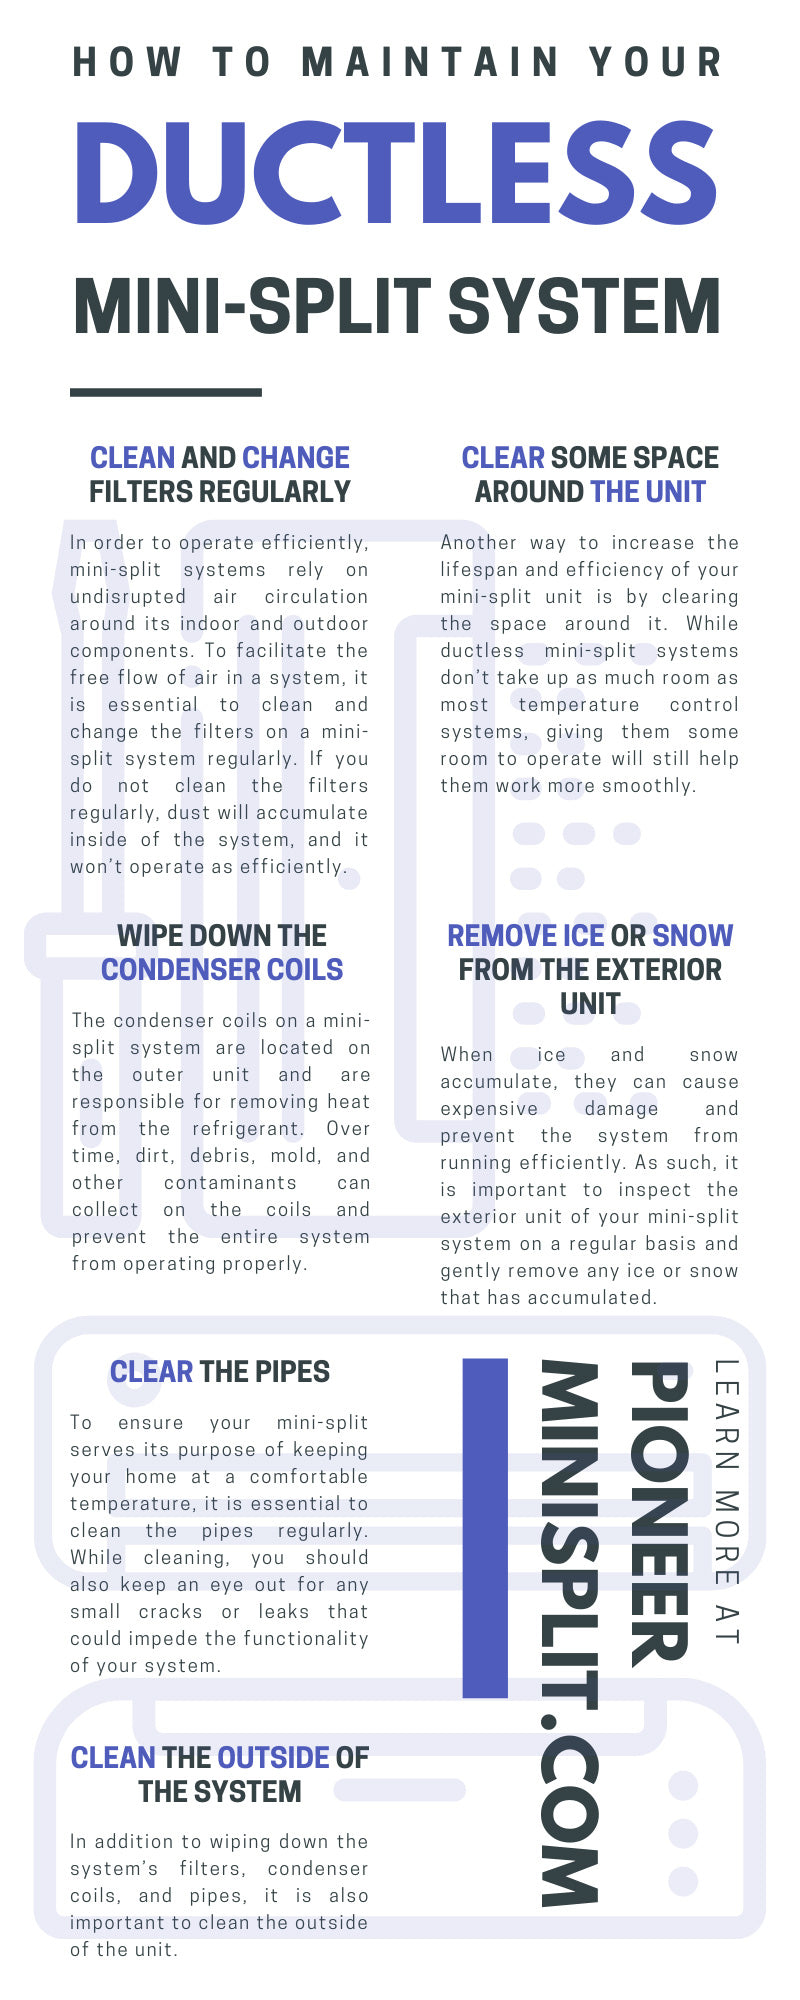 Maintain Your Ductless Mini-Split System